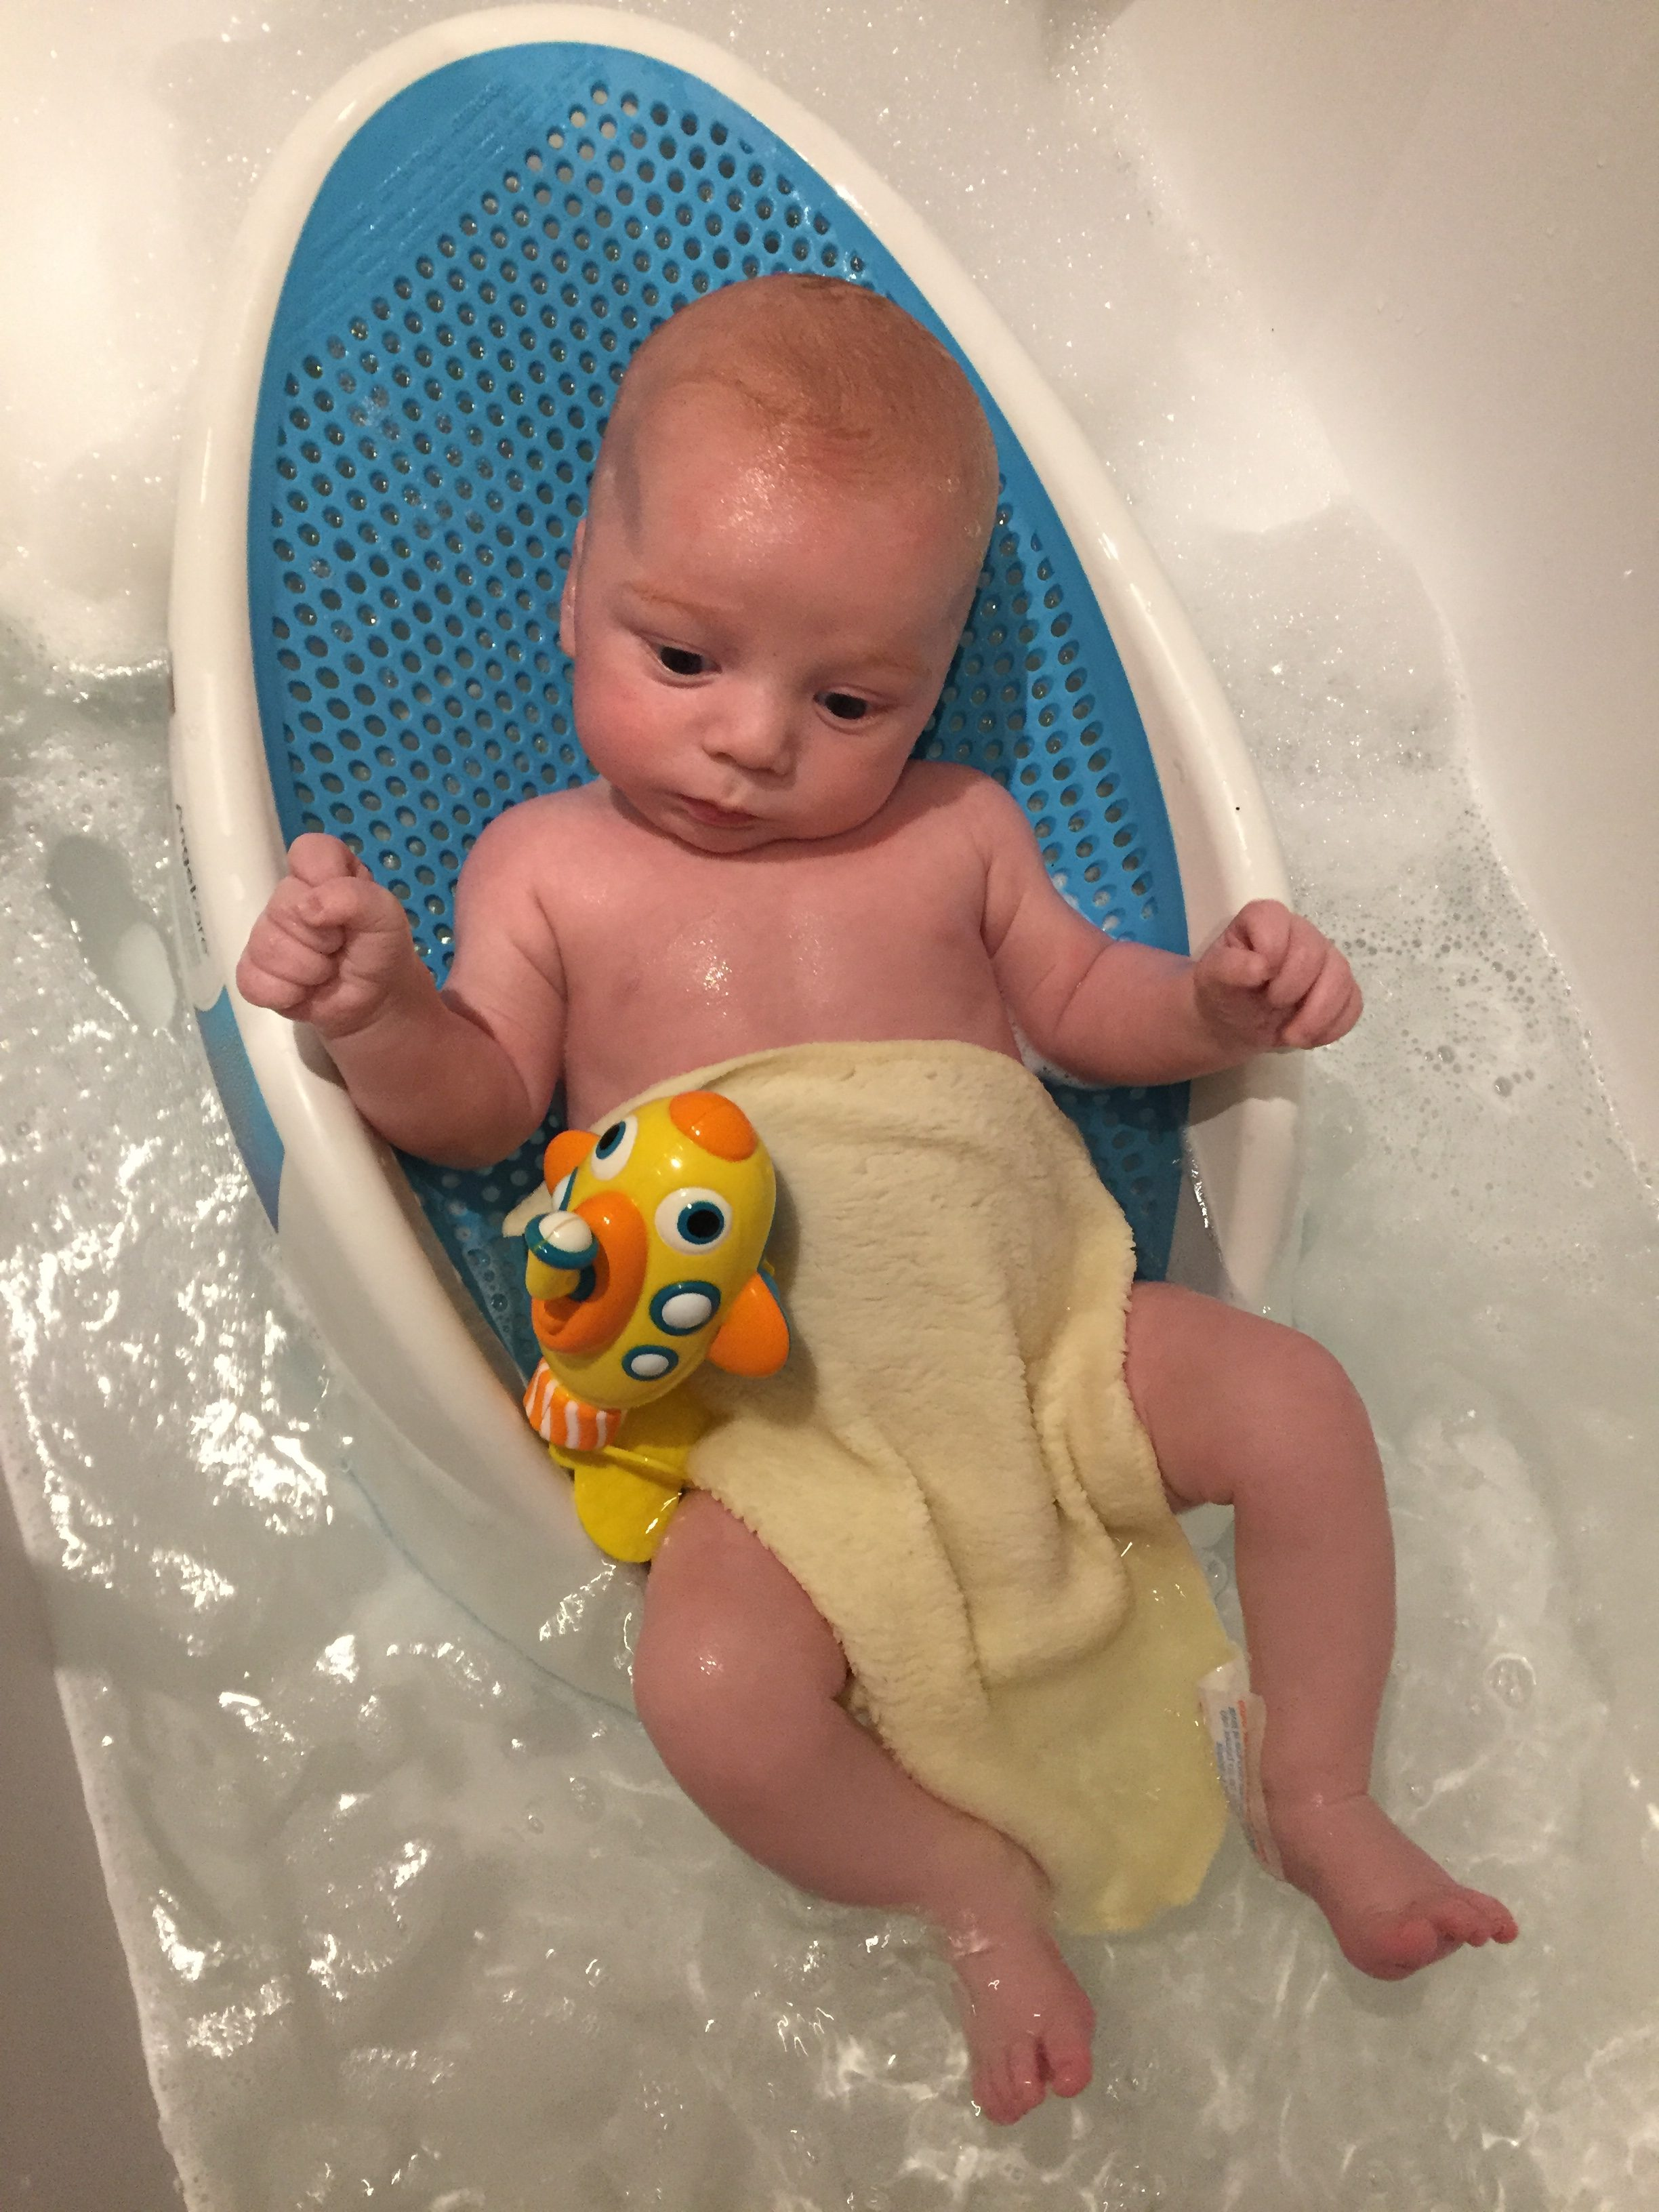 Baby C Loves his Nuby Bath Toys - UK Blogger